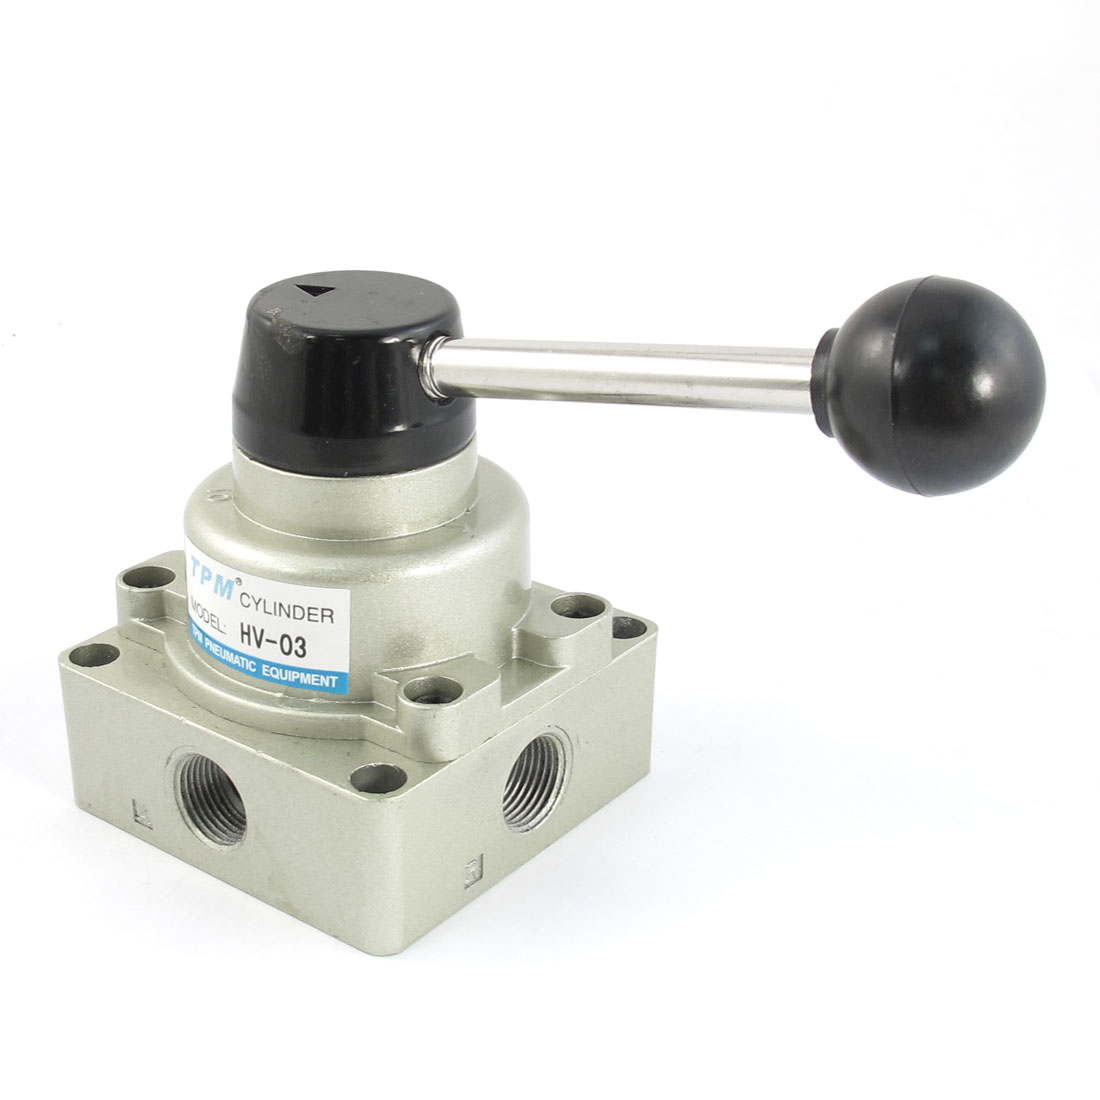 HV-03 3/8PT 4 Way 3 Position Hand Rotary Lever Valve Max.1.0 Mpa